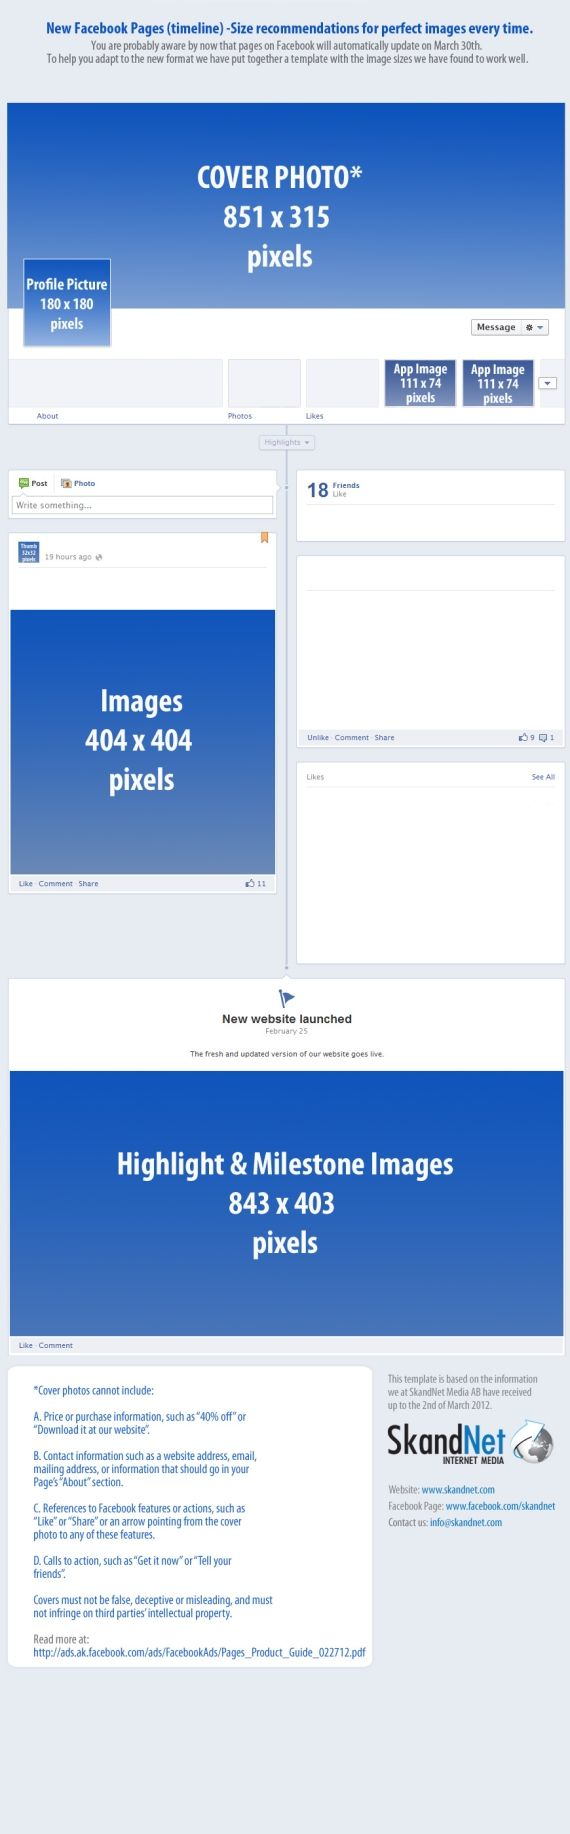 timeline picture sizes